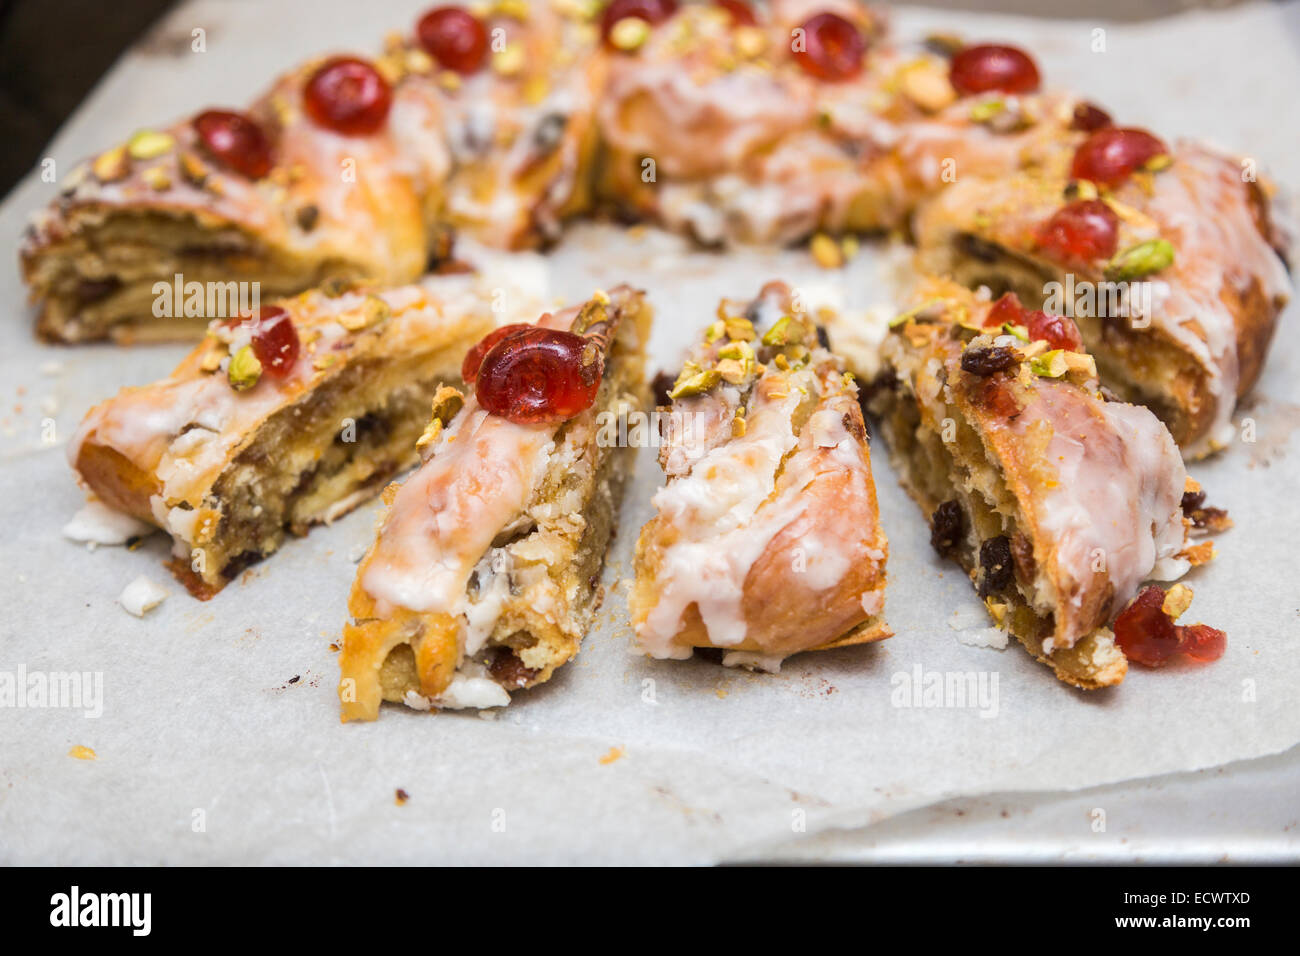 Mincemeat and marzipan couronne with glacé cherries decoration as featured in the Great British Bake Off Christmas - Stock Image